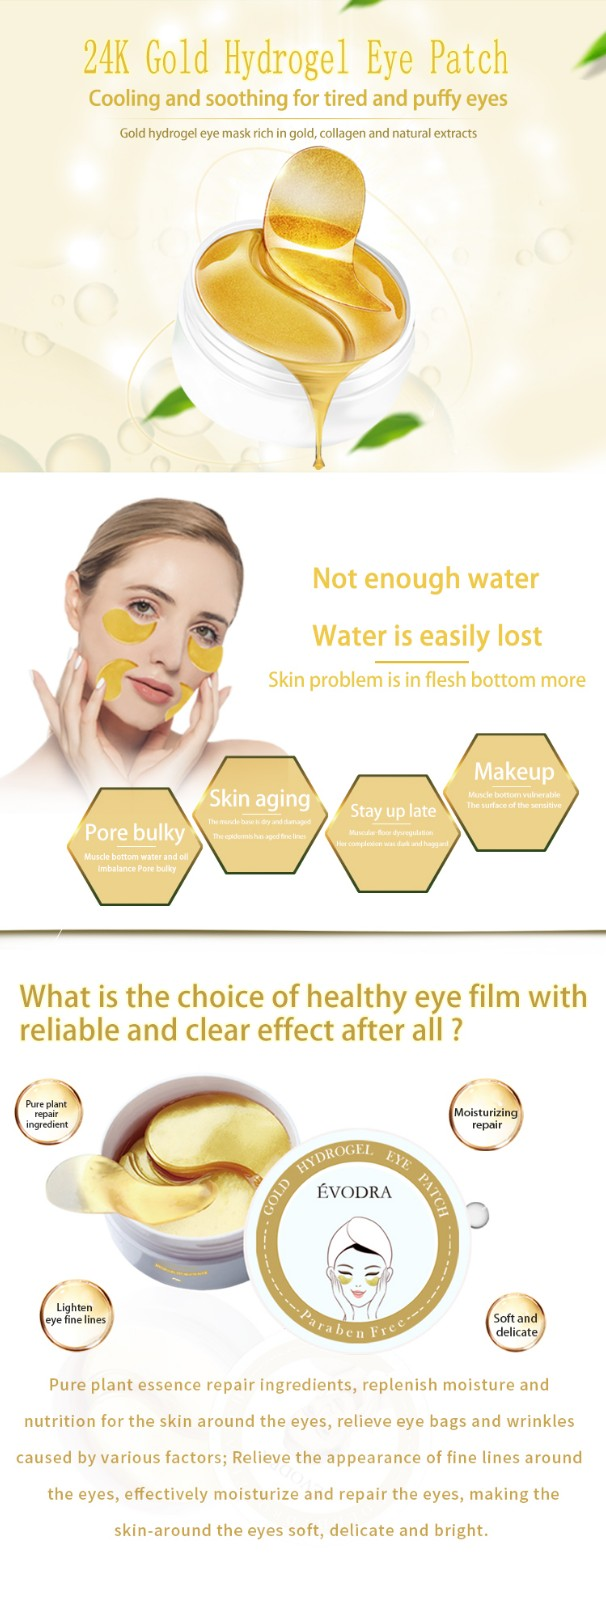 Calla-Skin Care Products Manufacture Manufacturer, Best Hydrating Eye Mask | Calla